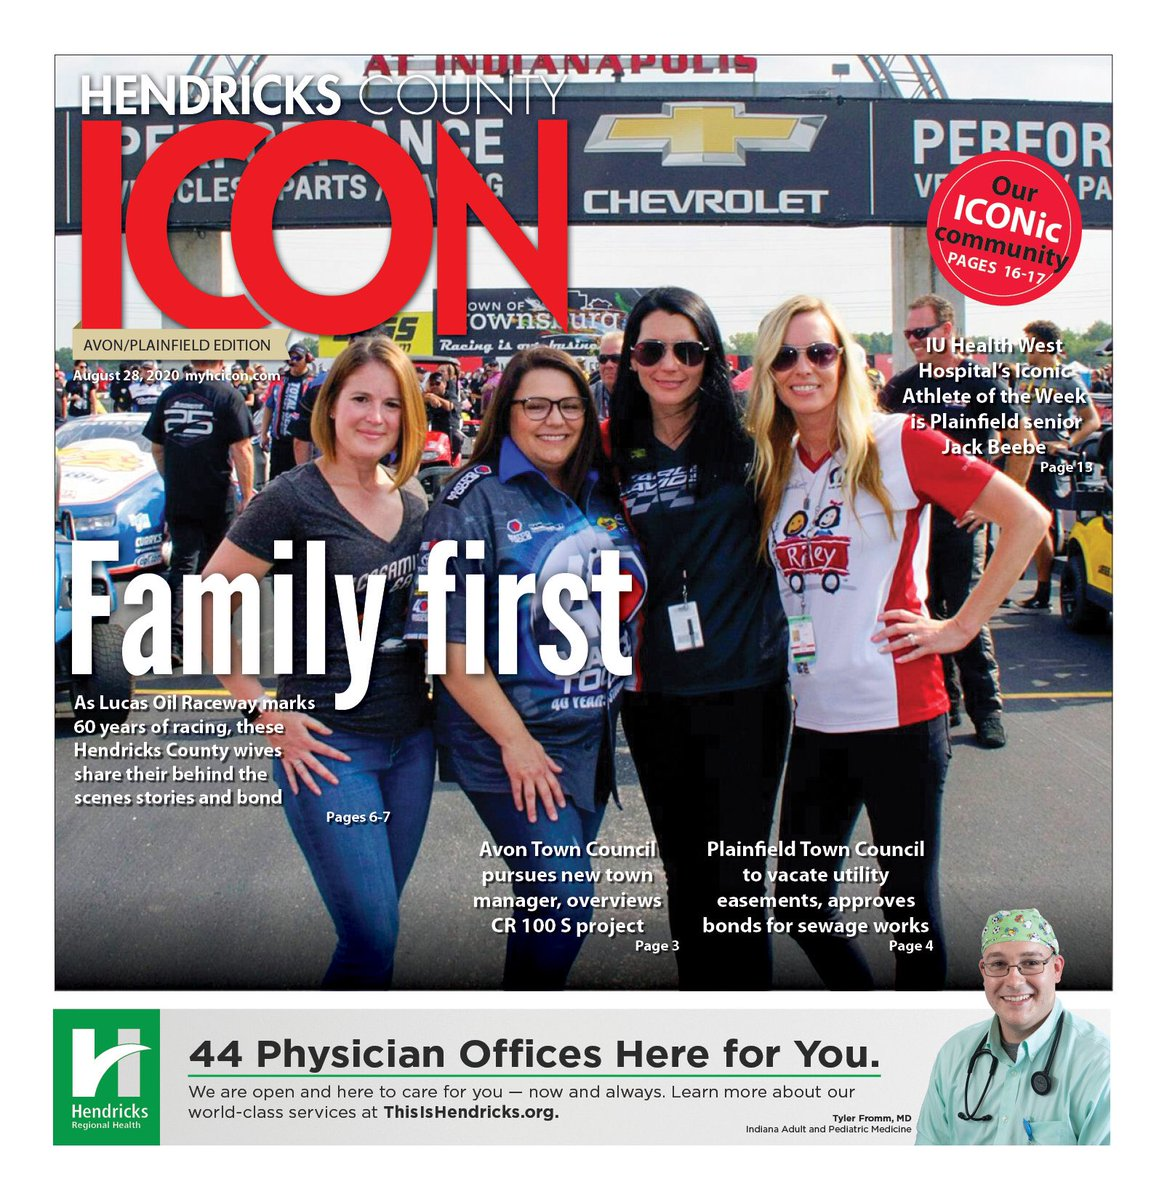 #FamilyFirst As @LucasOilRaceway marks 60 years of racing, these Hendricks County wives share their behind the scenes stories and bond.   Article Q&A Personality:  https://t.co/MYJXHhhESe  @NHRA #Racing #Family  #AvonIN #BrownsburgIN #DanvilleIndiana #inHendricks https://t.co/GAfQrpjEXM